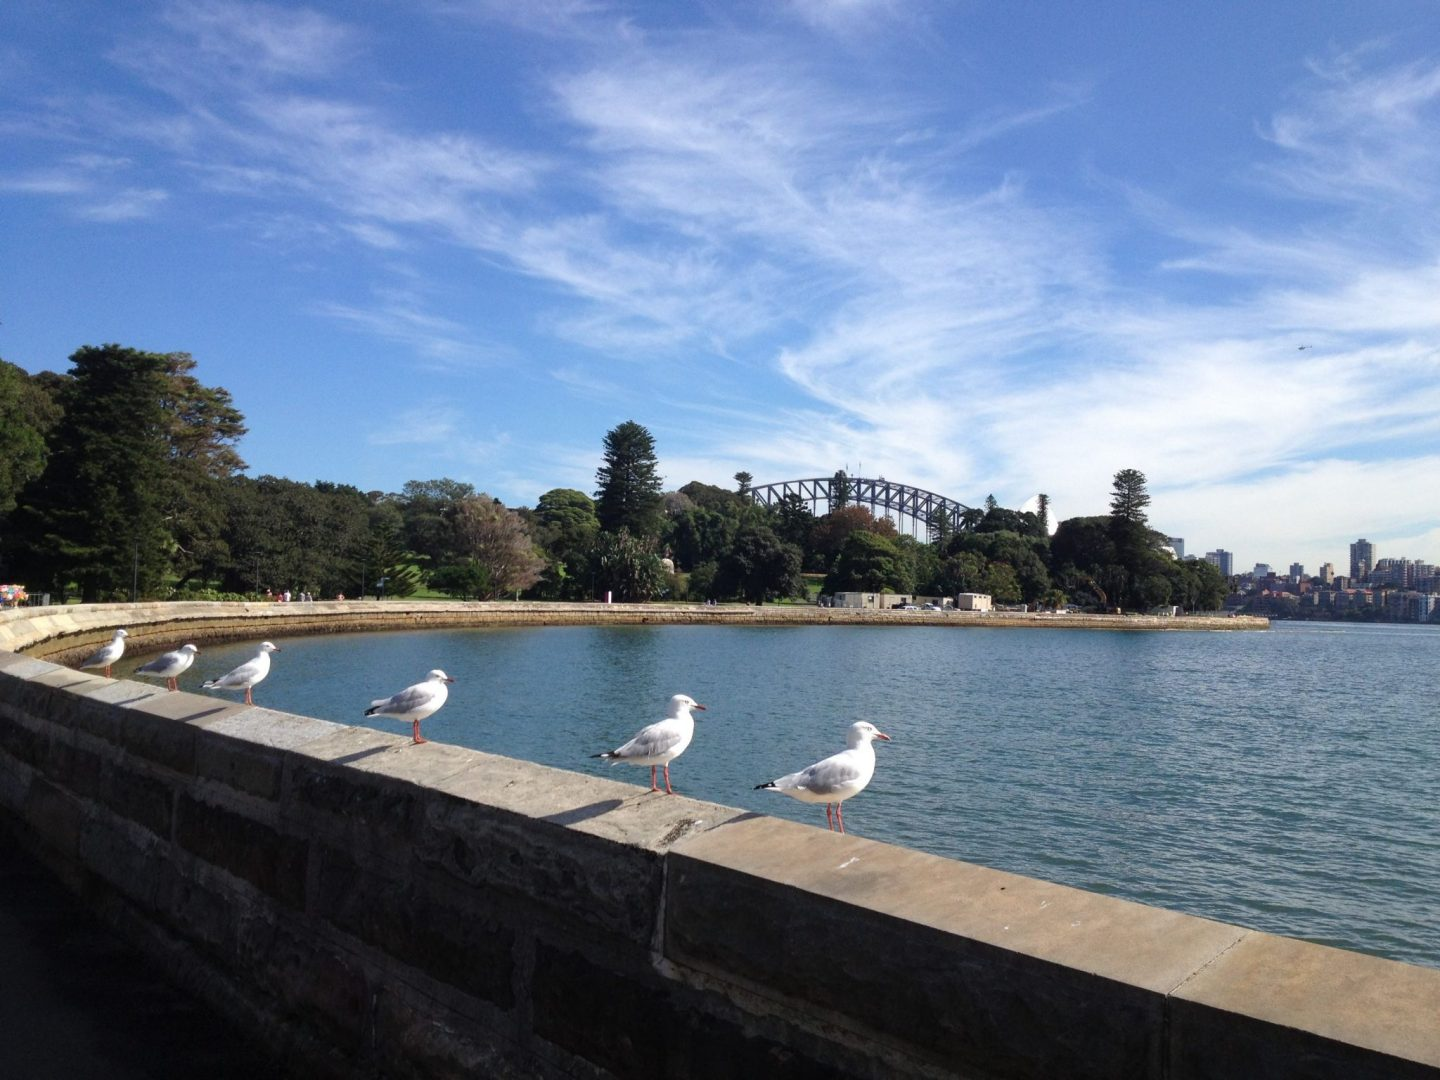 Seagulls near Sydney Harbour Bridge